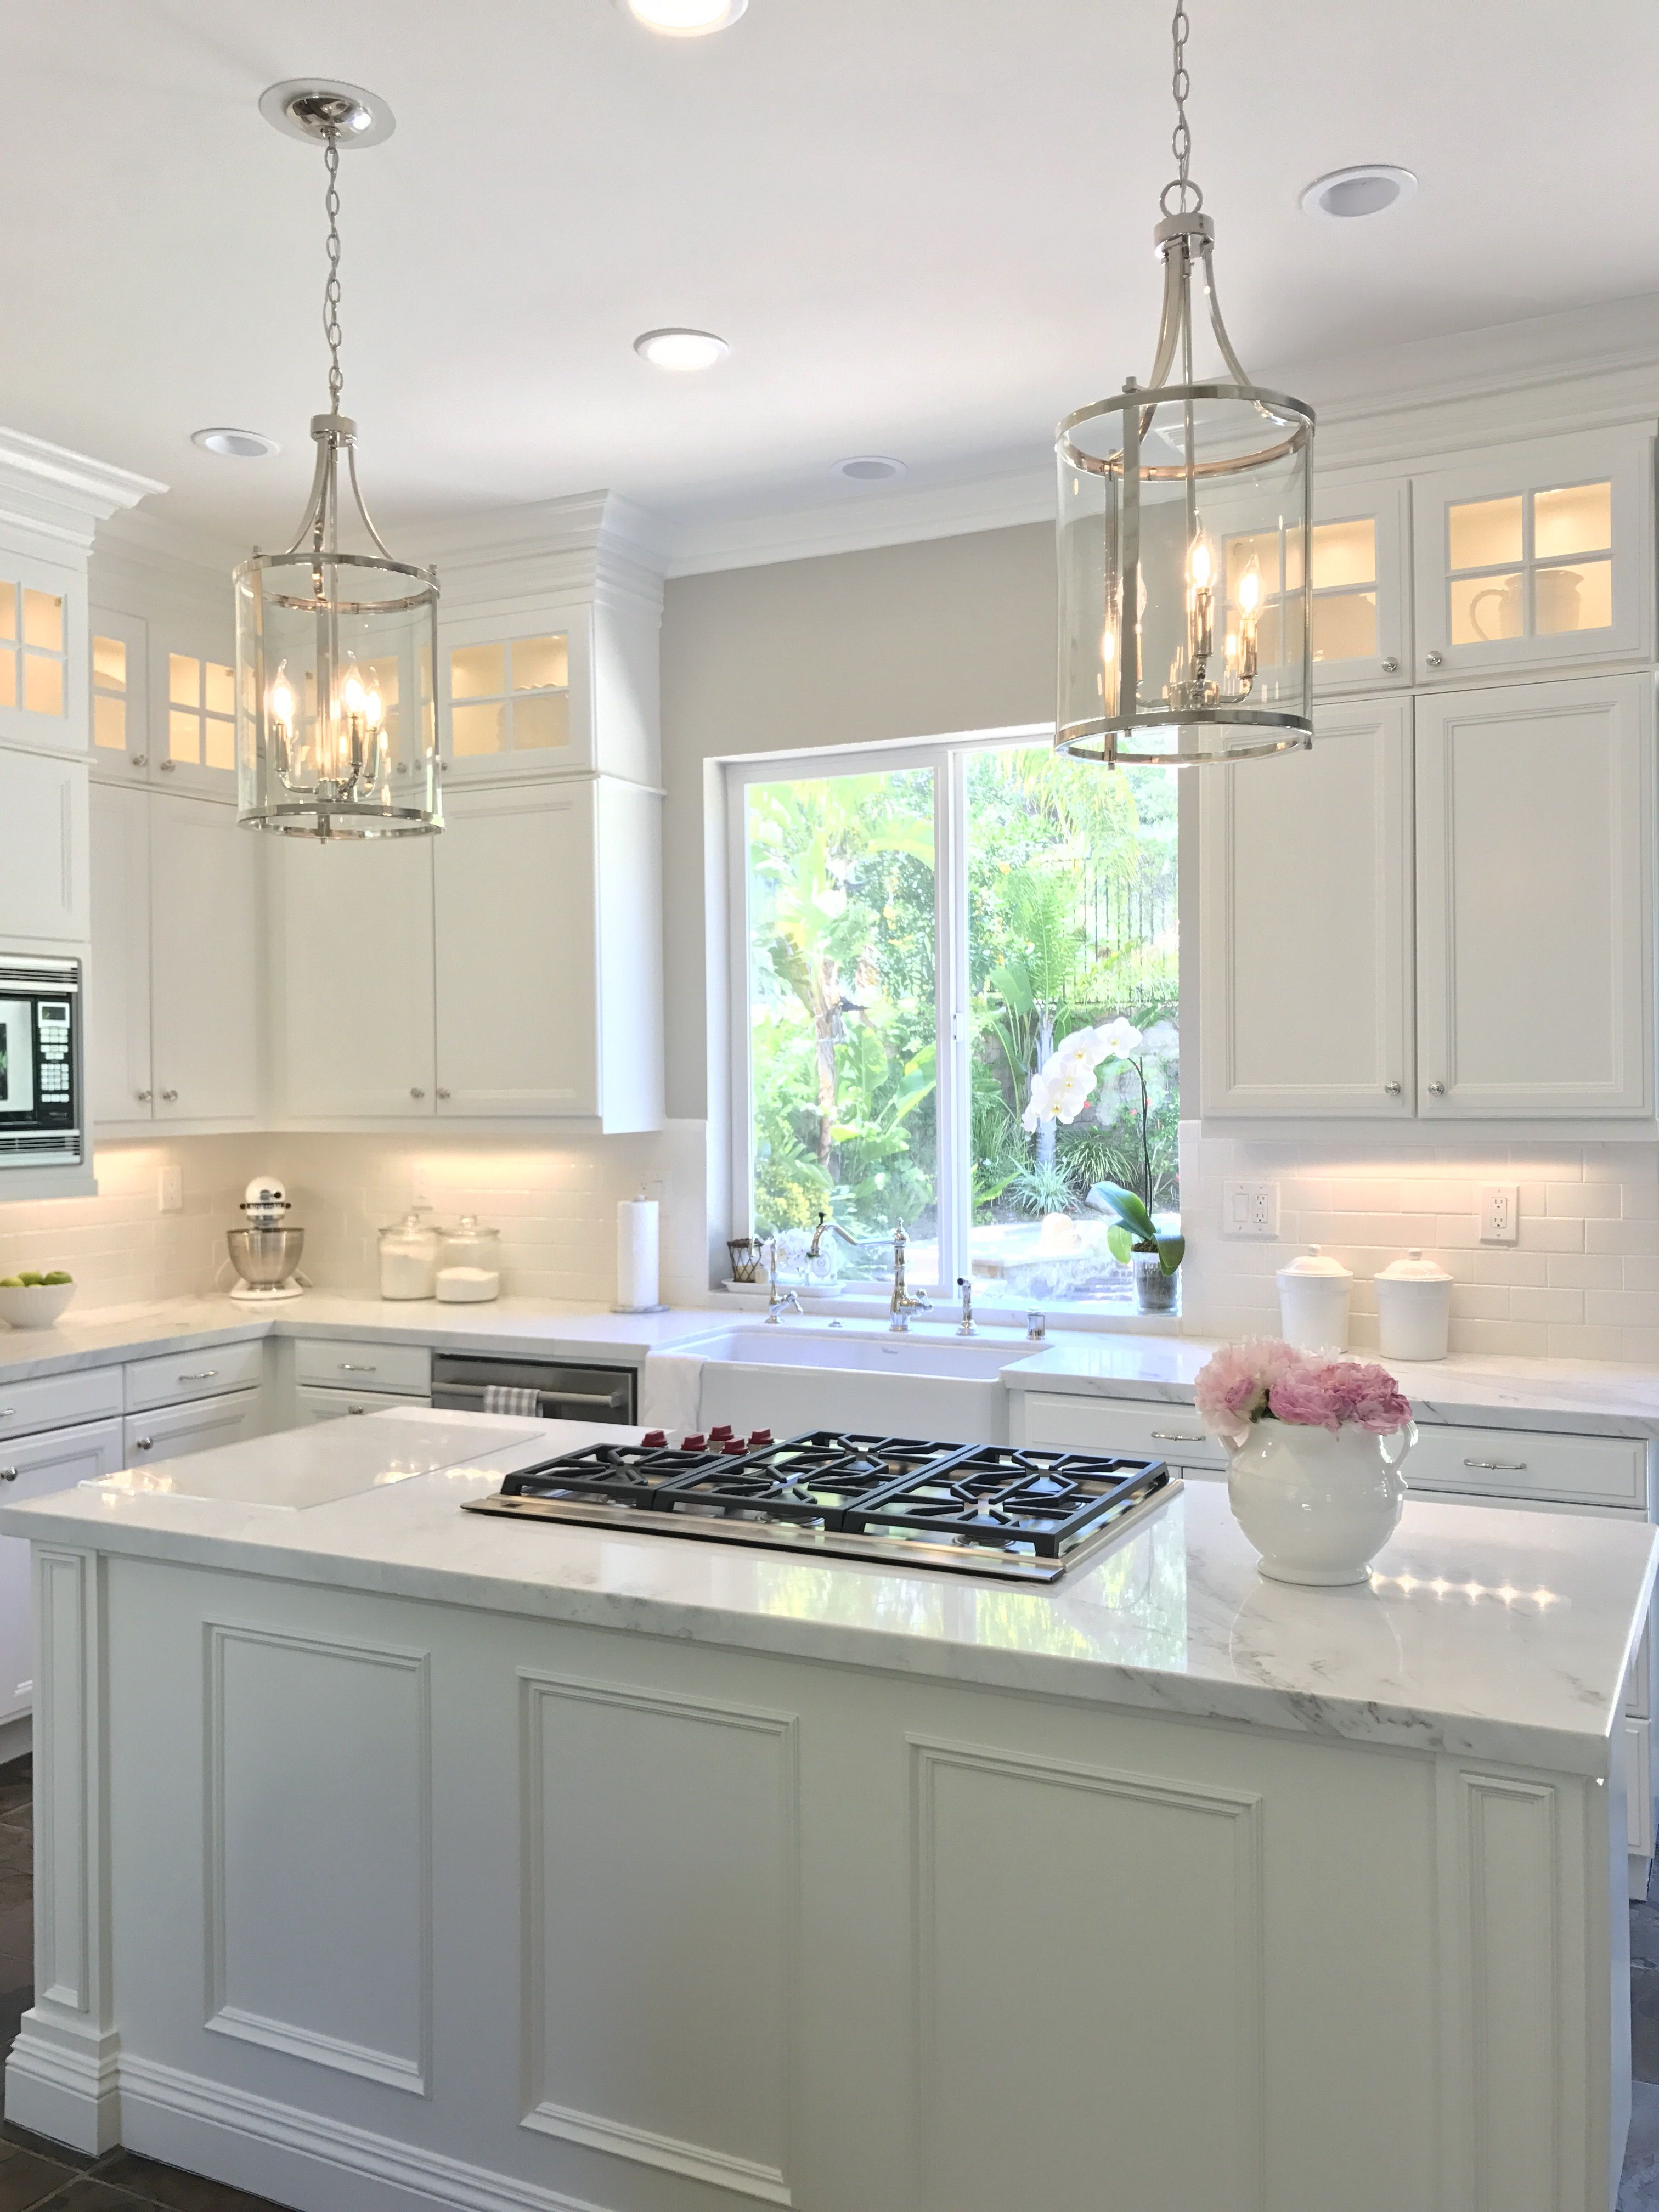 Kitchen Cabinets To Ceiling With Glass White Kitchen With Danby Marble And Subway Tile Backsplash